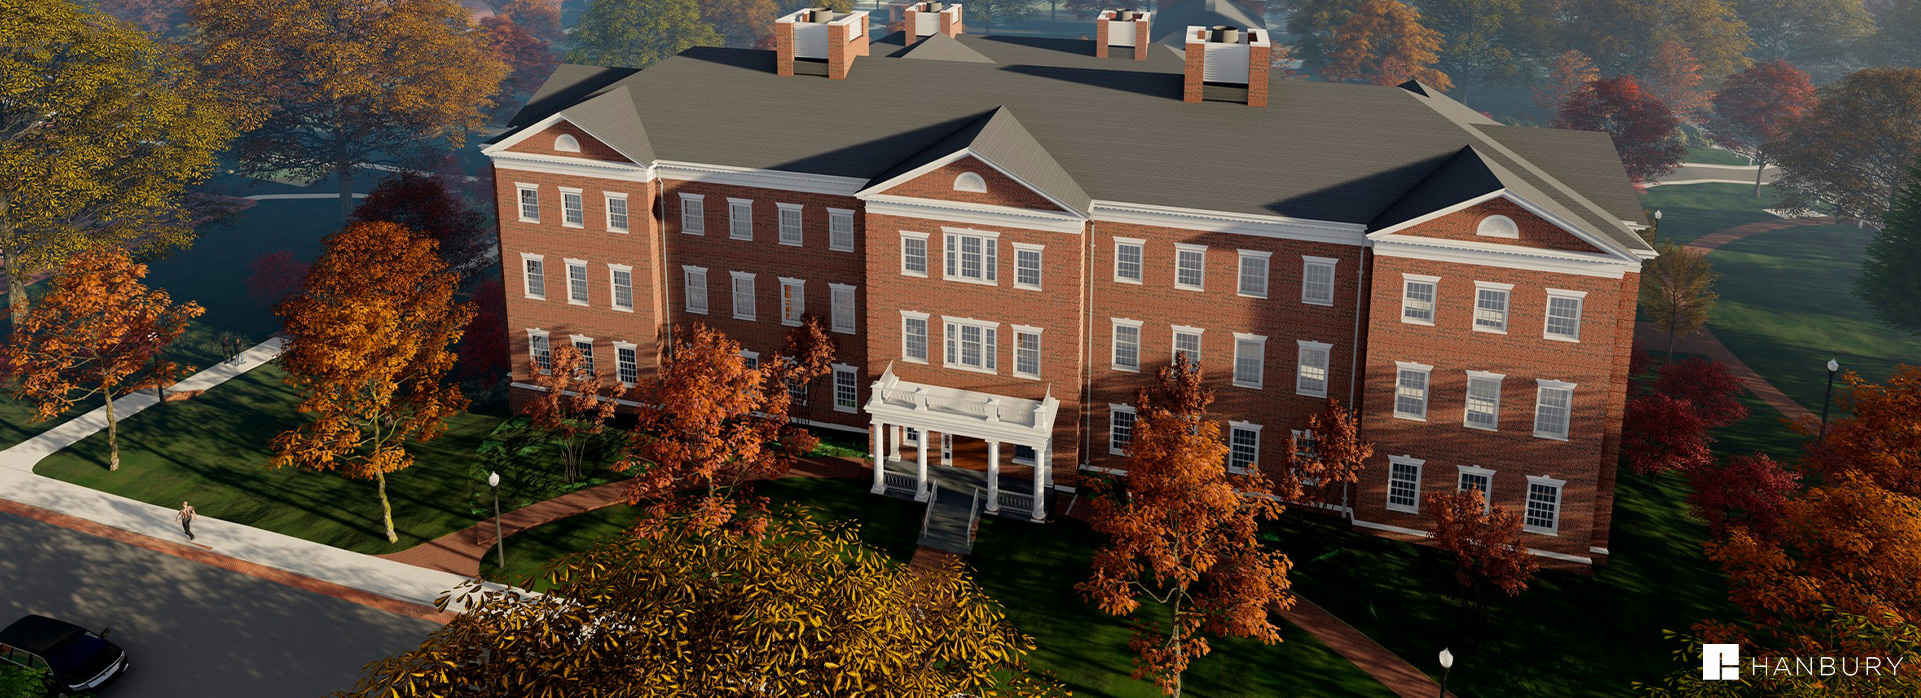 35 North Provides Cost Estimating Services to Hampden-Sydney College for their New Science Building in Hampden-Sydney, VA